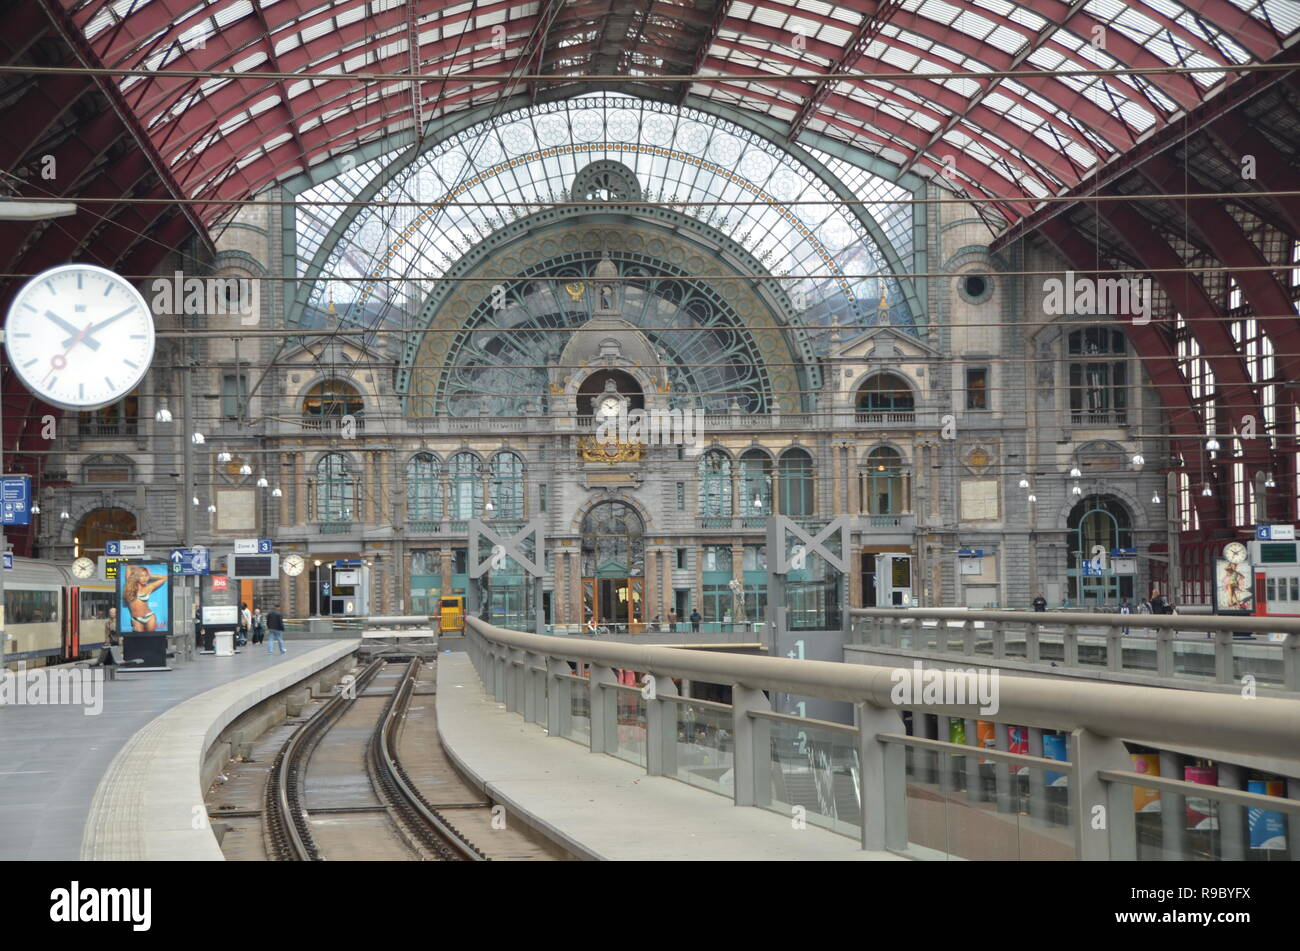 Antwerp Central Train Station Stock Photo Alamy